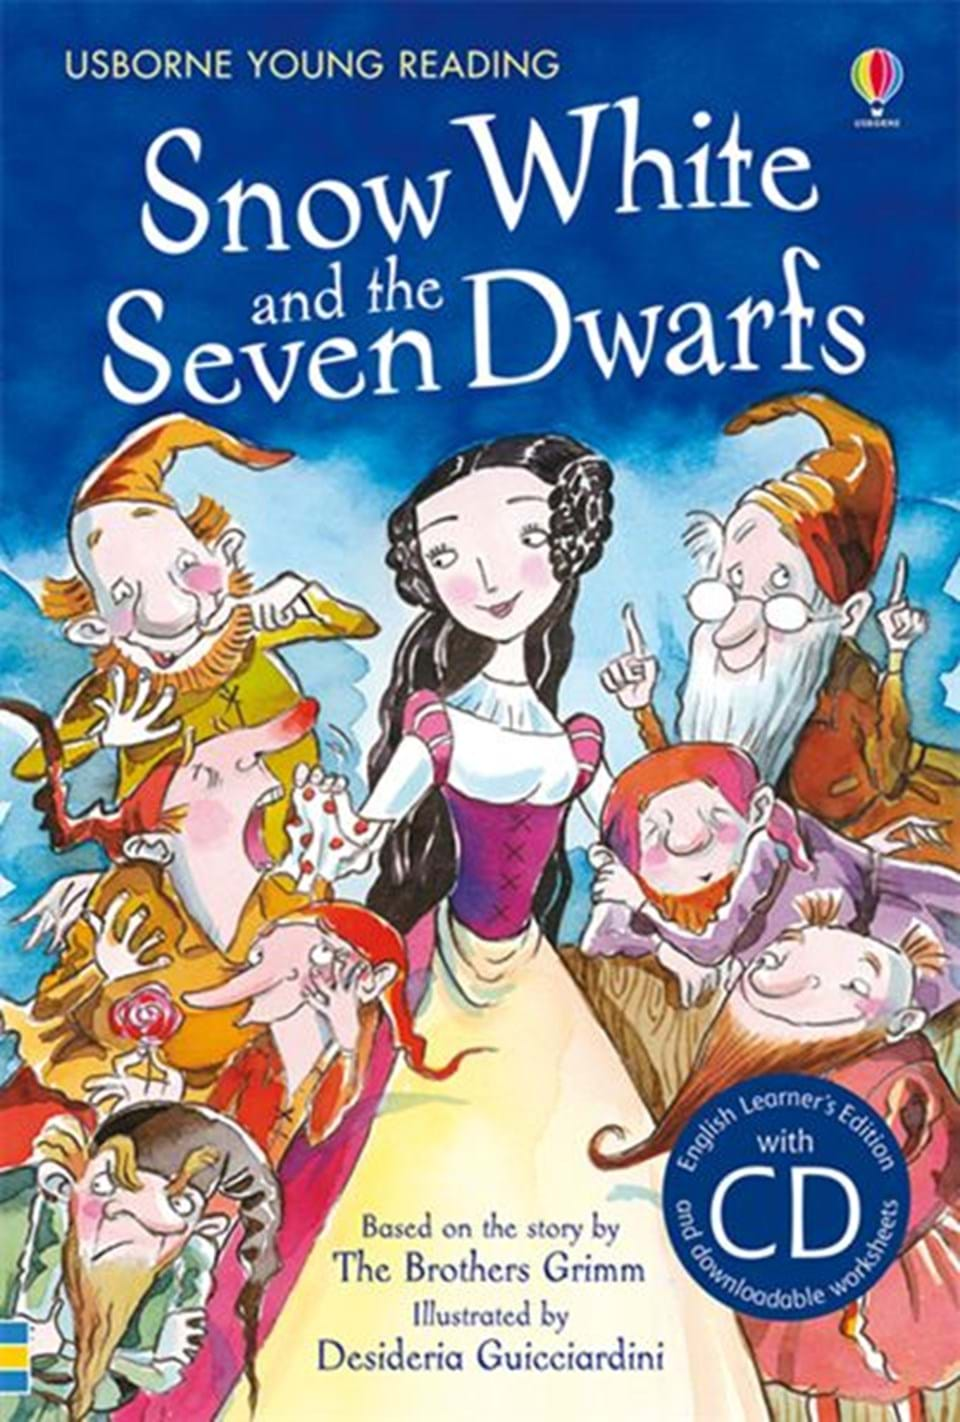 �snow white and the seven dwarfs� at usborne books at home